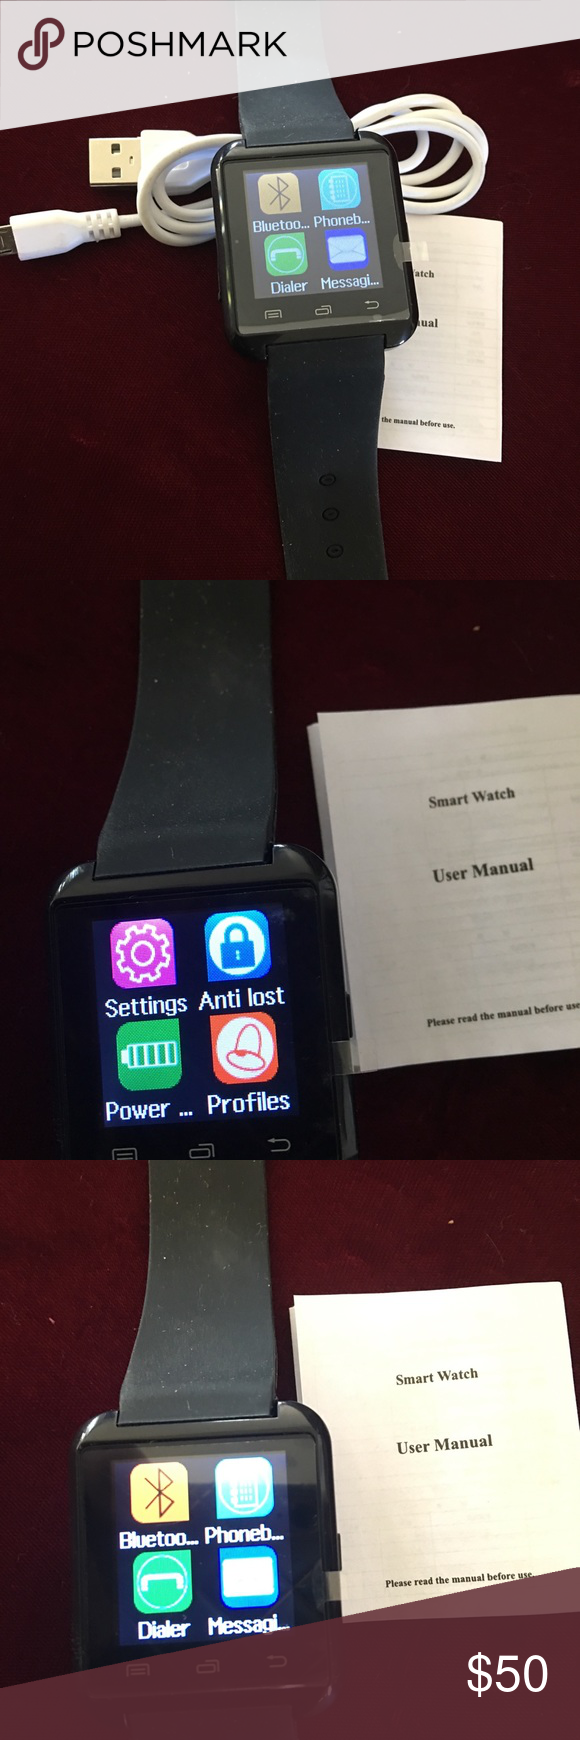 BLUETOOTH U8 SMART WATCH Great Bluetooth for IPhone Android